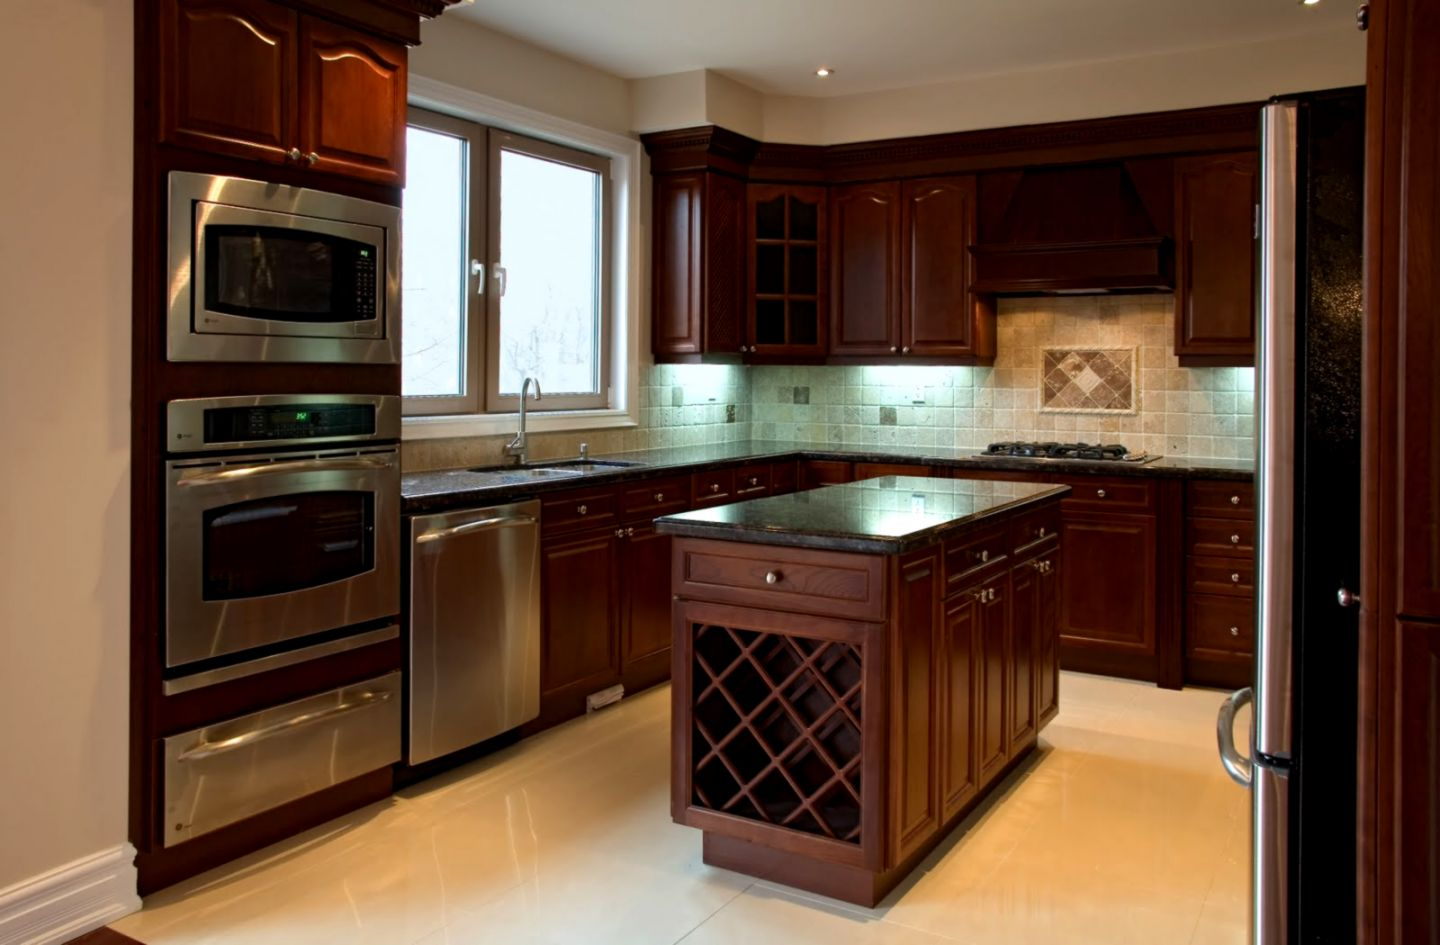 Fancy Kitchen Interior Design Ideas on Home Design Ideas or